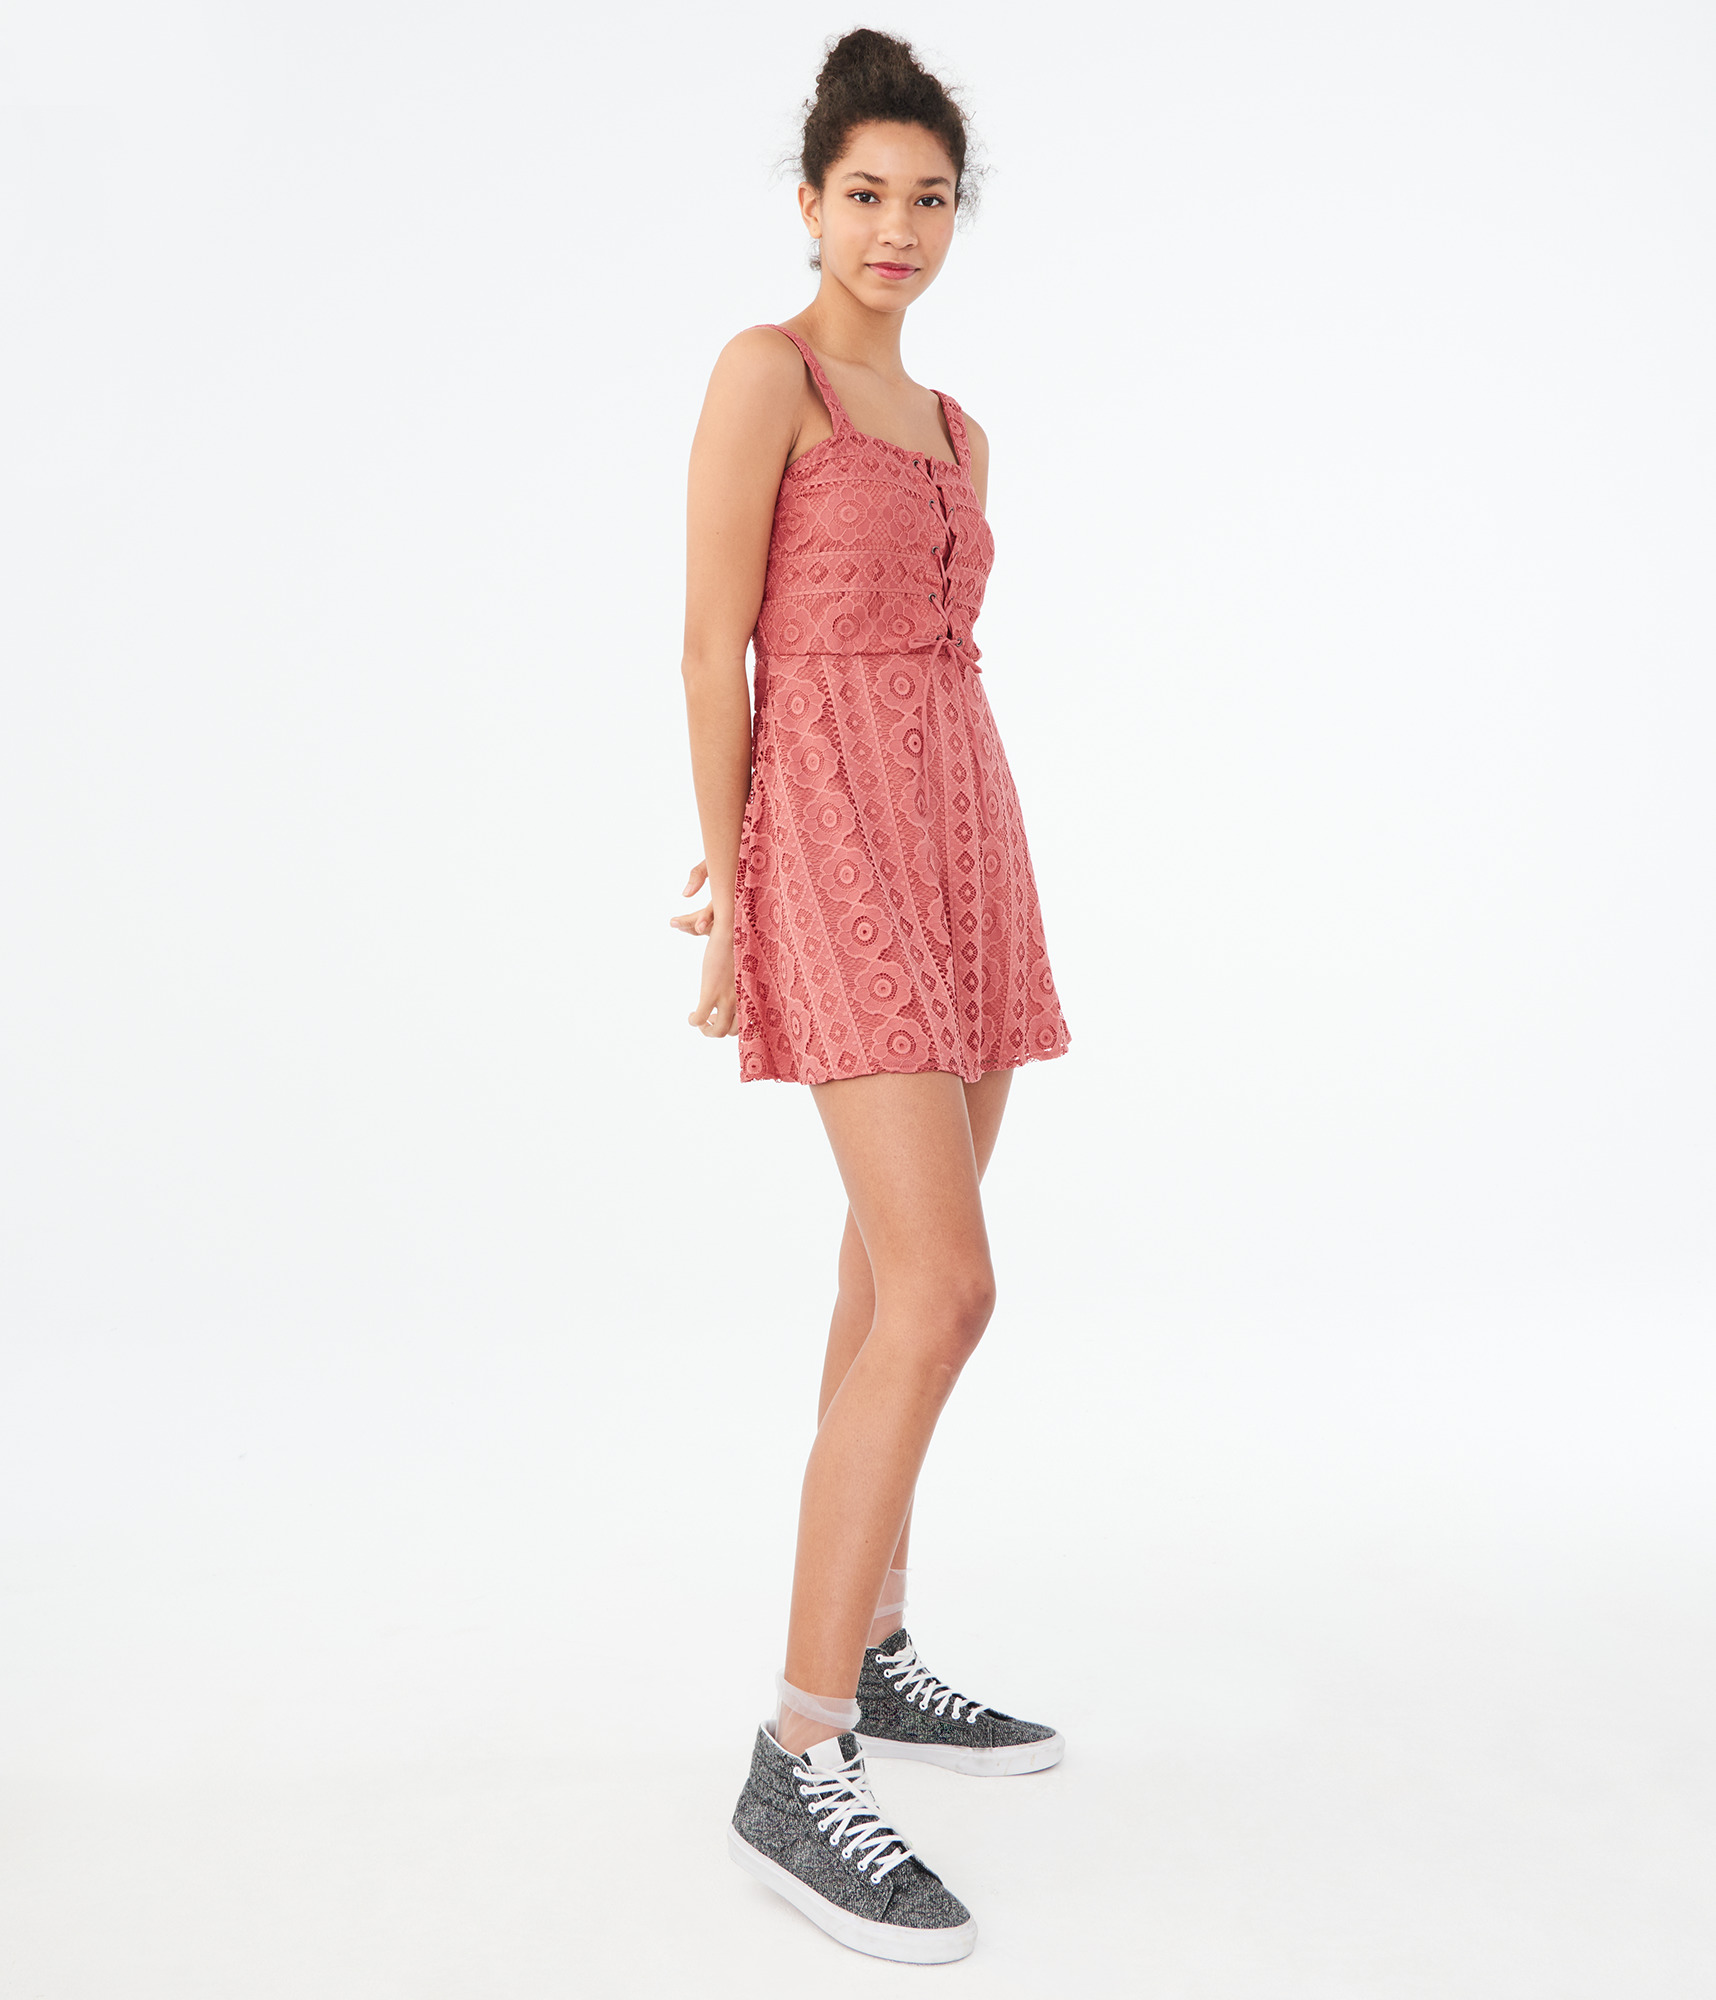 aeropostale-womens-solid-square-neck-lace-corset-fit-amp-flare-dress thumbnail 5